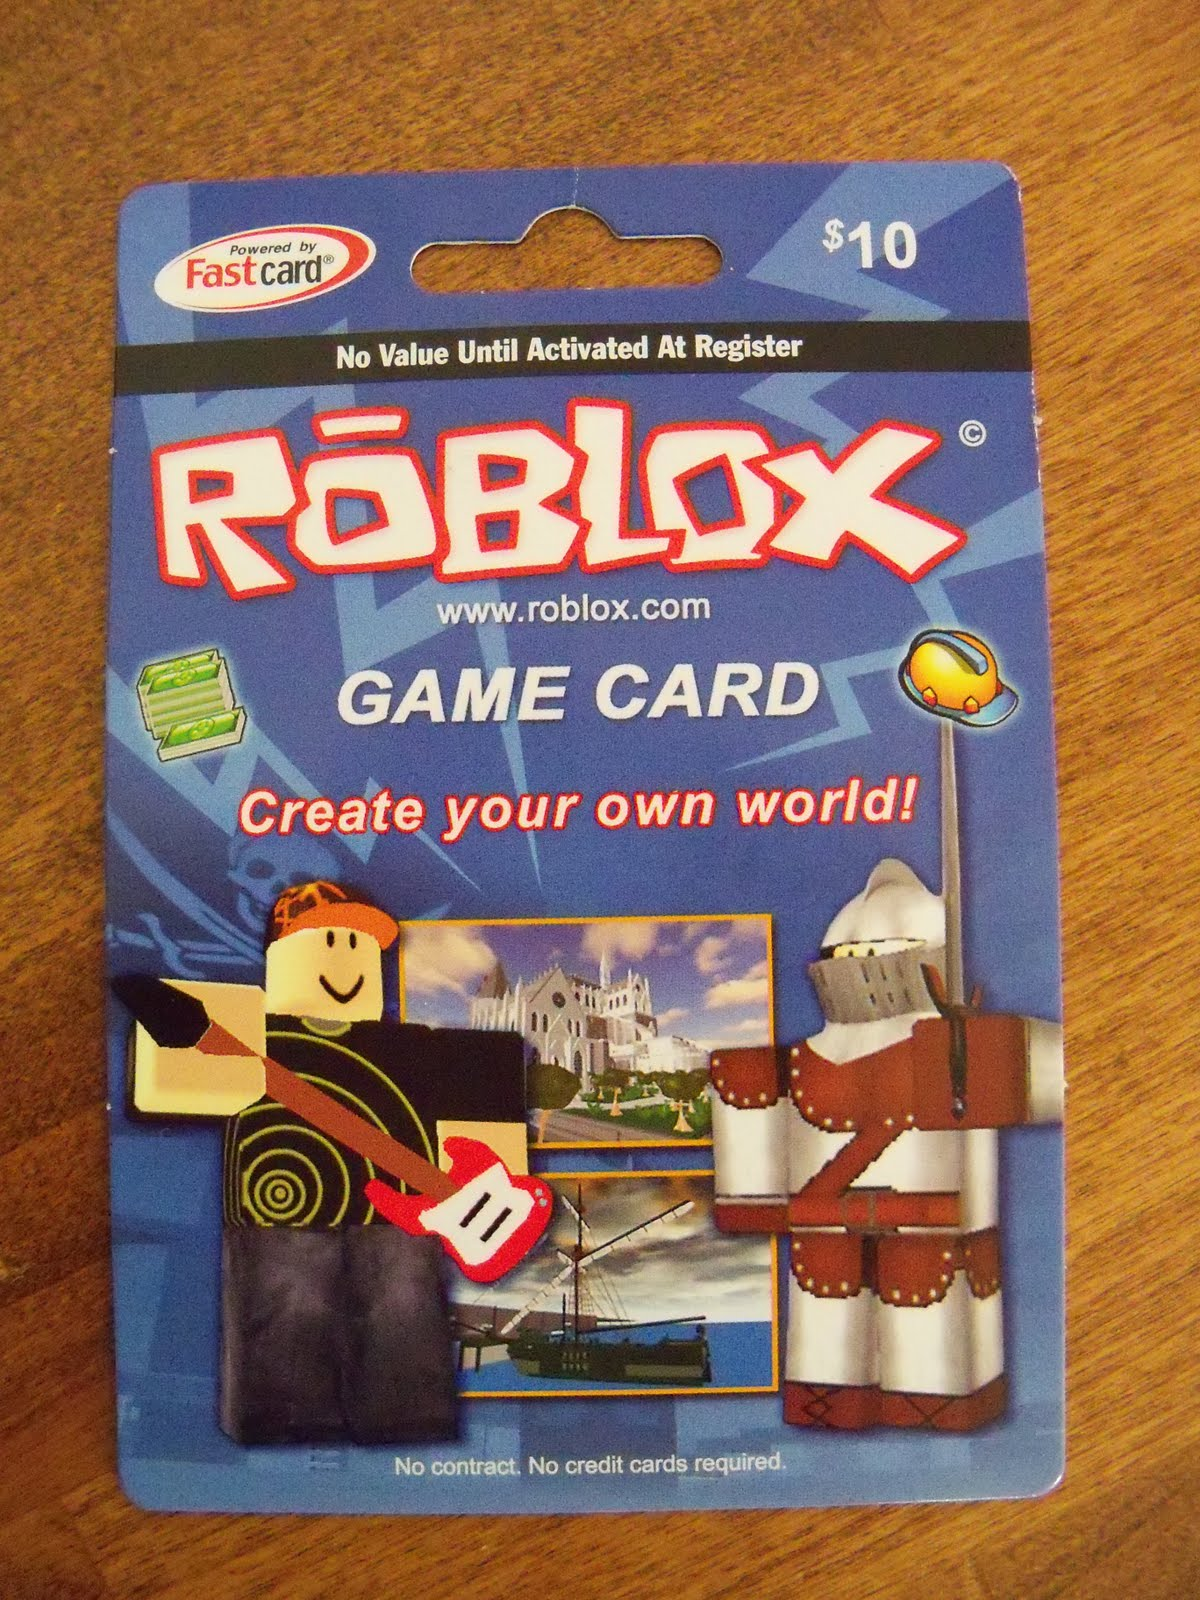 Savings Chatter: Best Buy  $10 Roblox Card for FREE!!